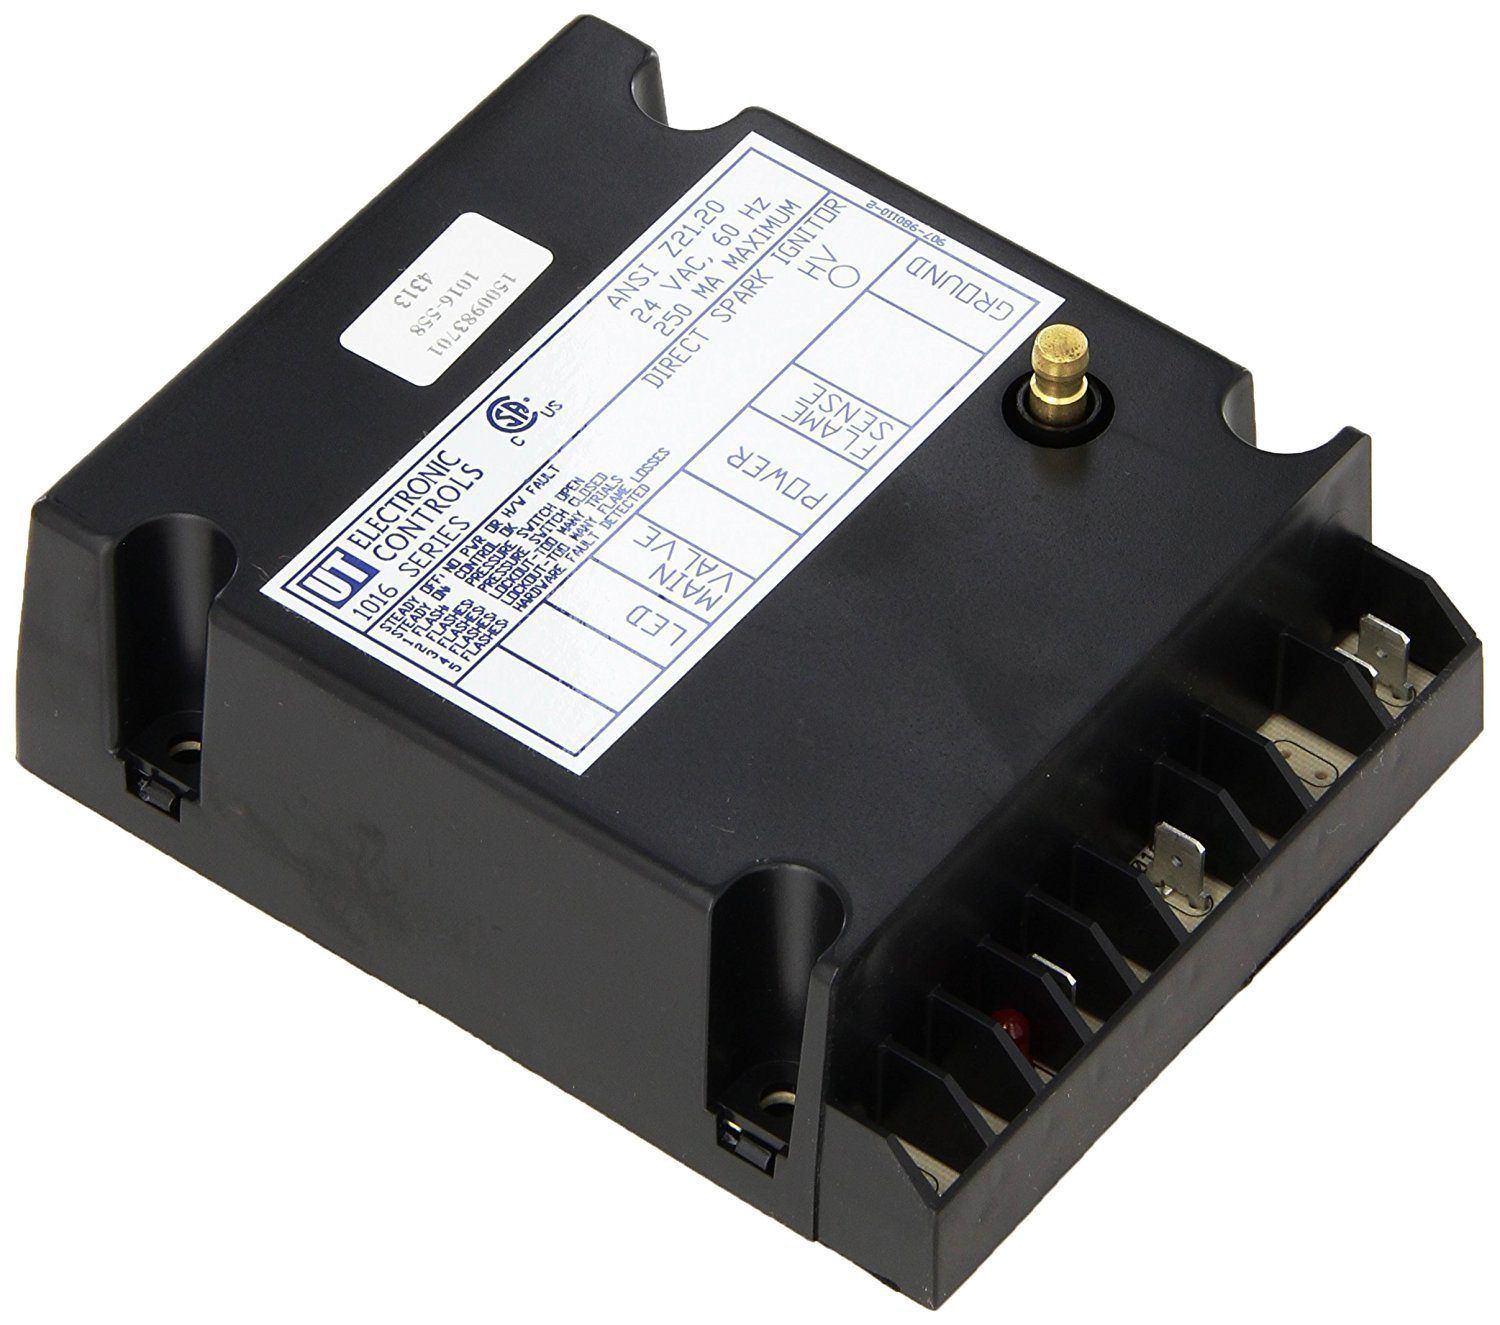 Hayward HAXMOD1930 Control Module Replacement for Hayward H-Series Ed1  Style Pool Heater